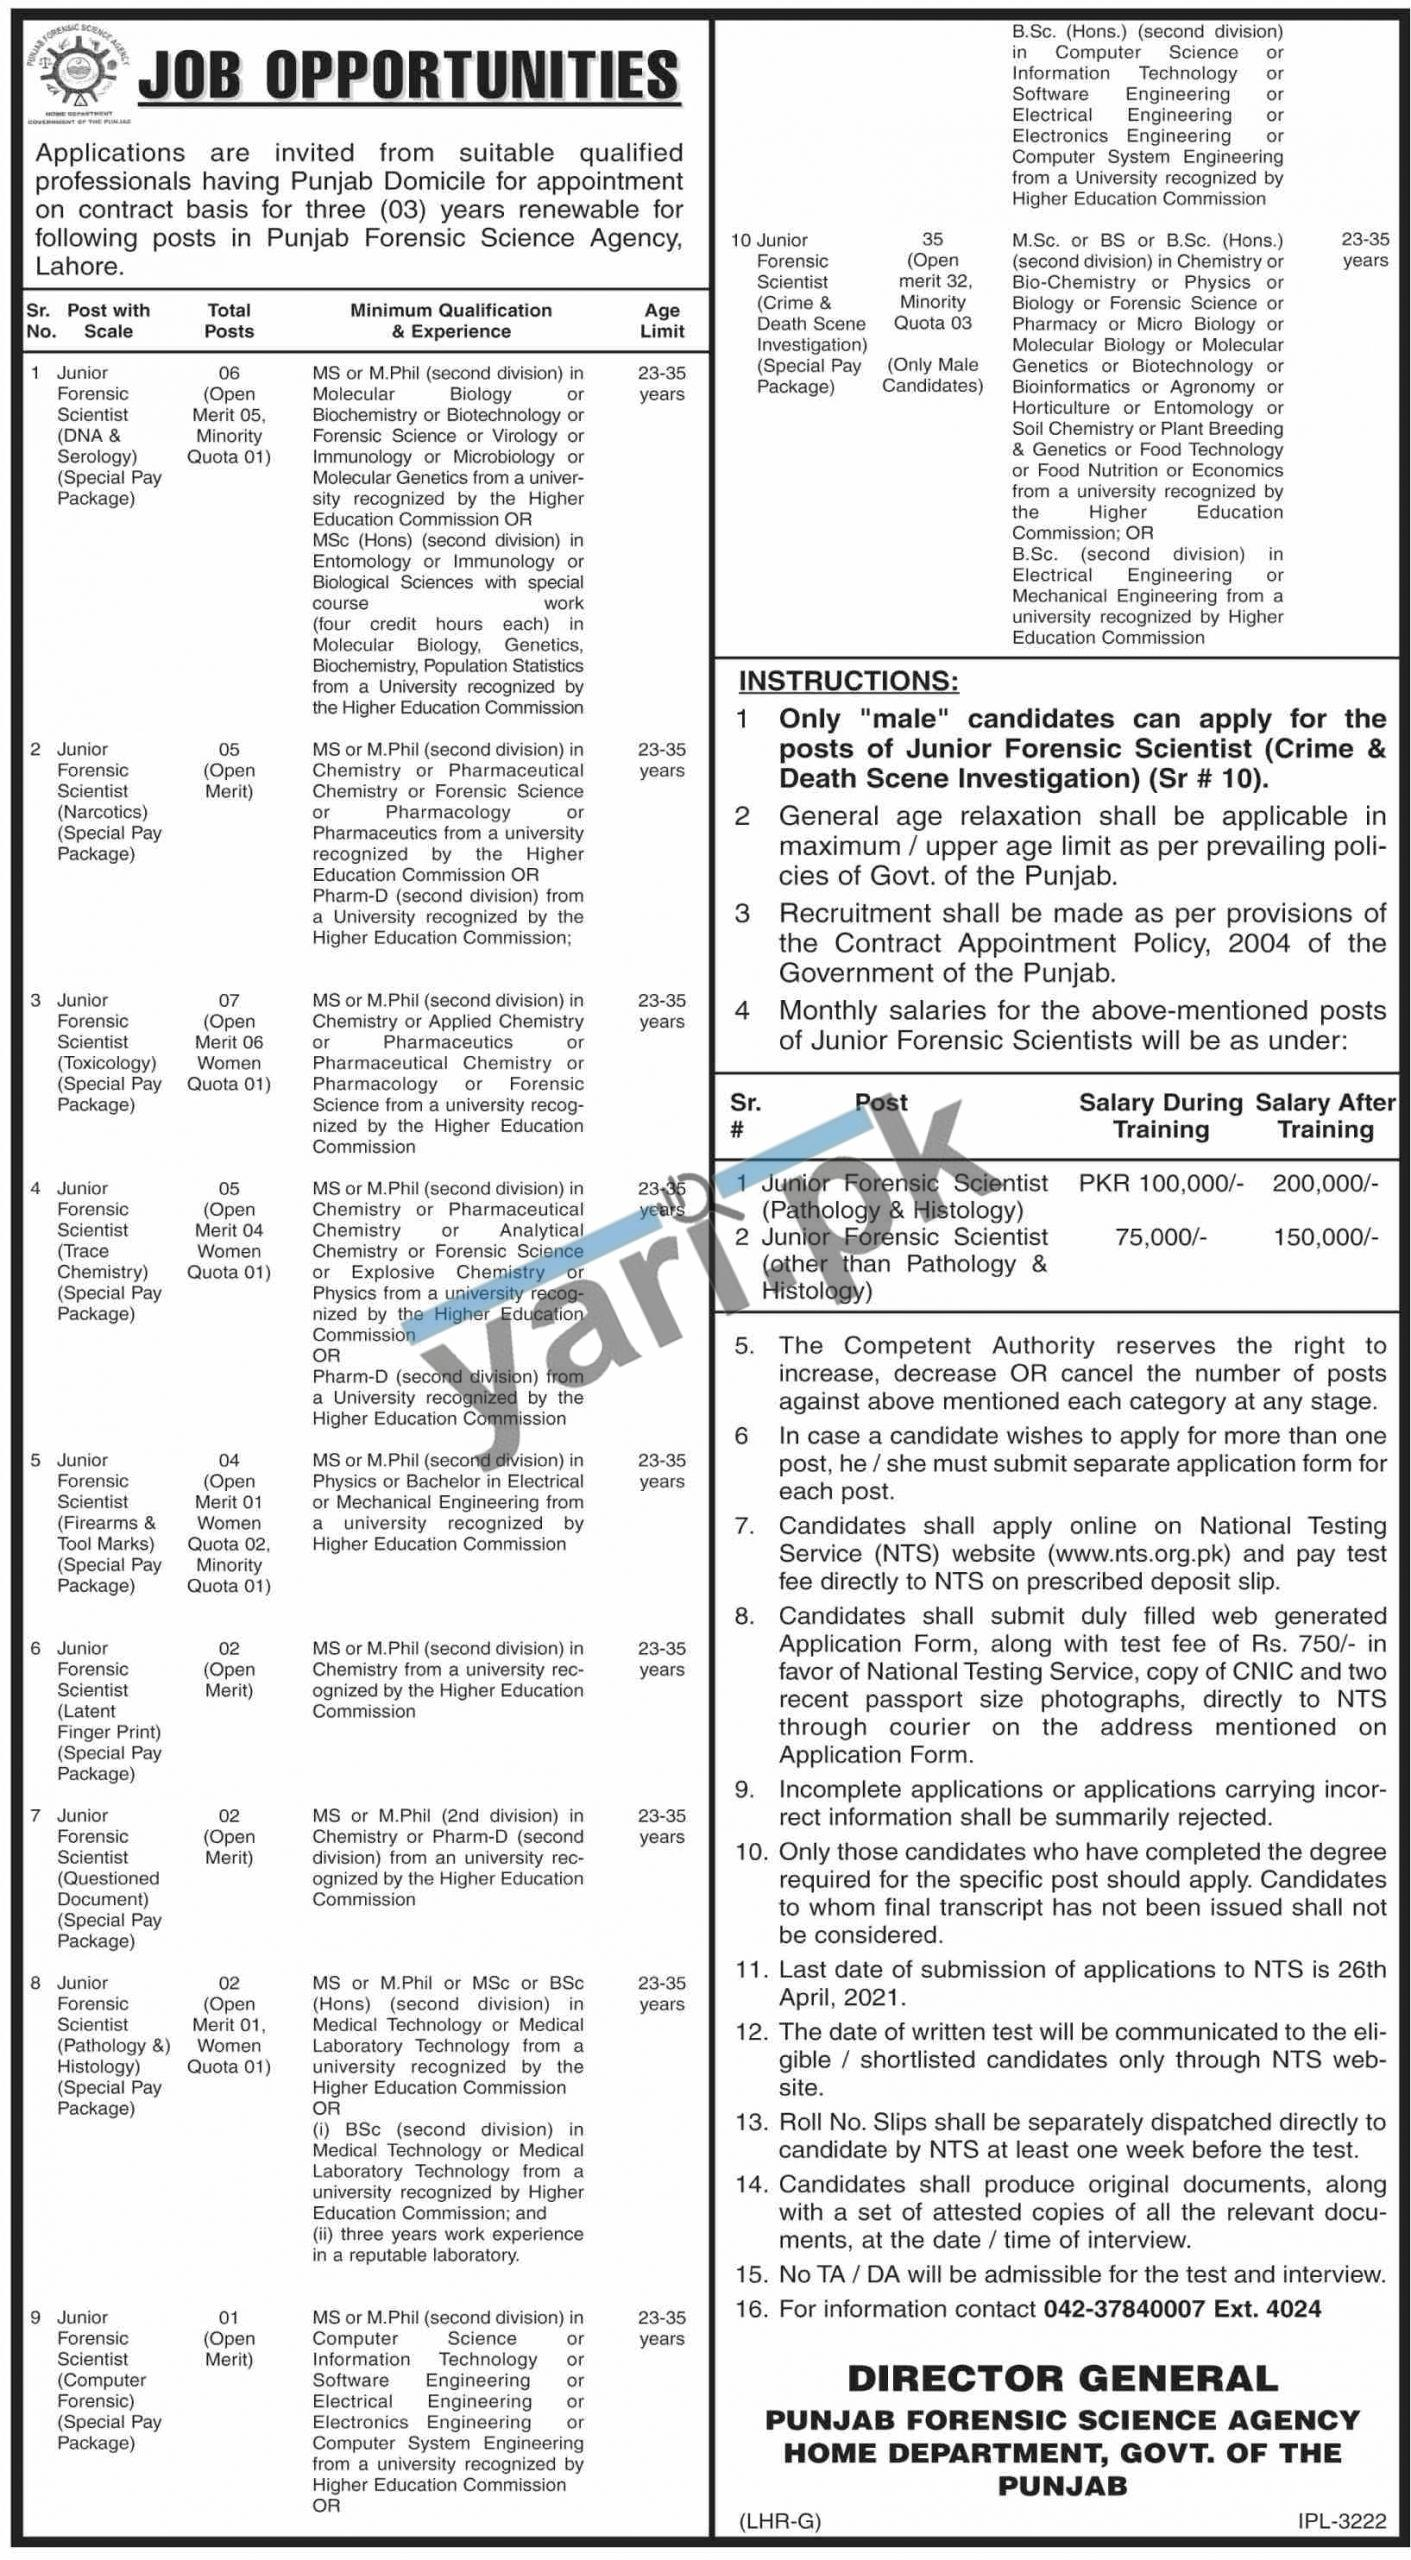 pfsa-jobs-2021-for-junior-forensic-scientist-toxicology